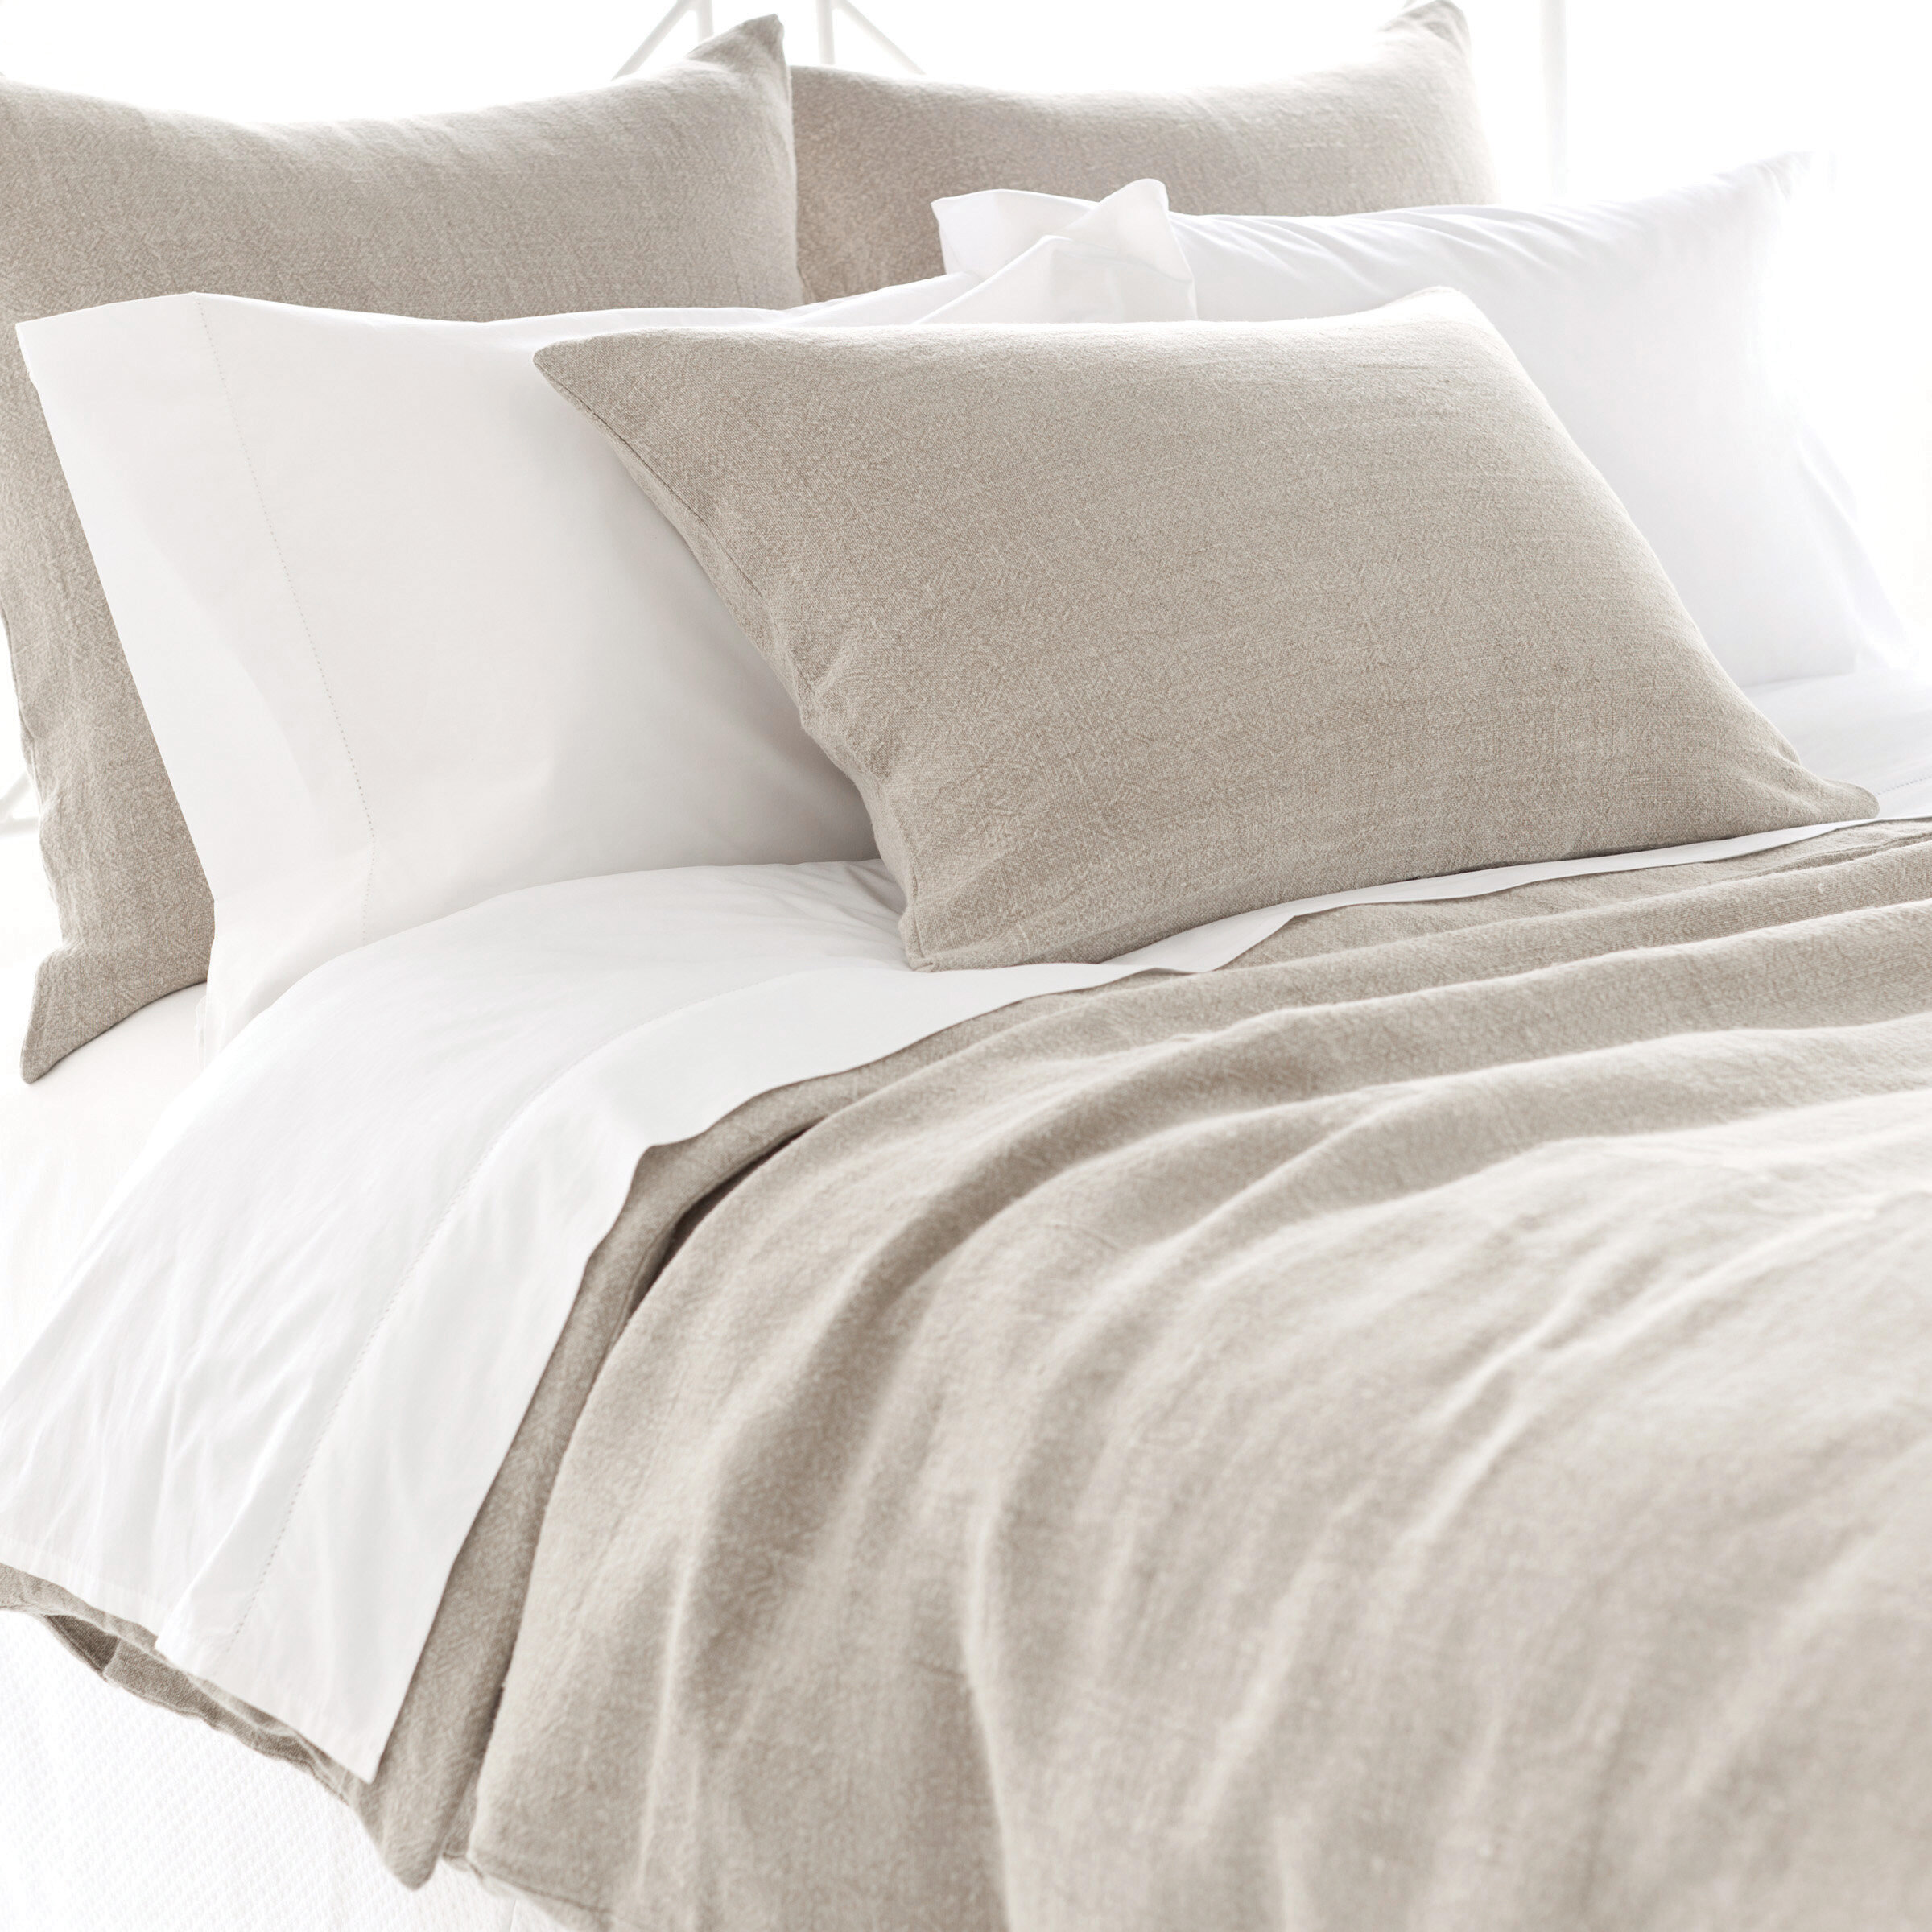 Pine cone hill stone washed linen duvet cover collection reviews wayfair